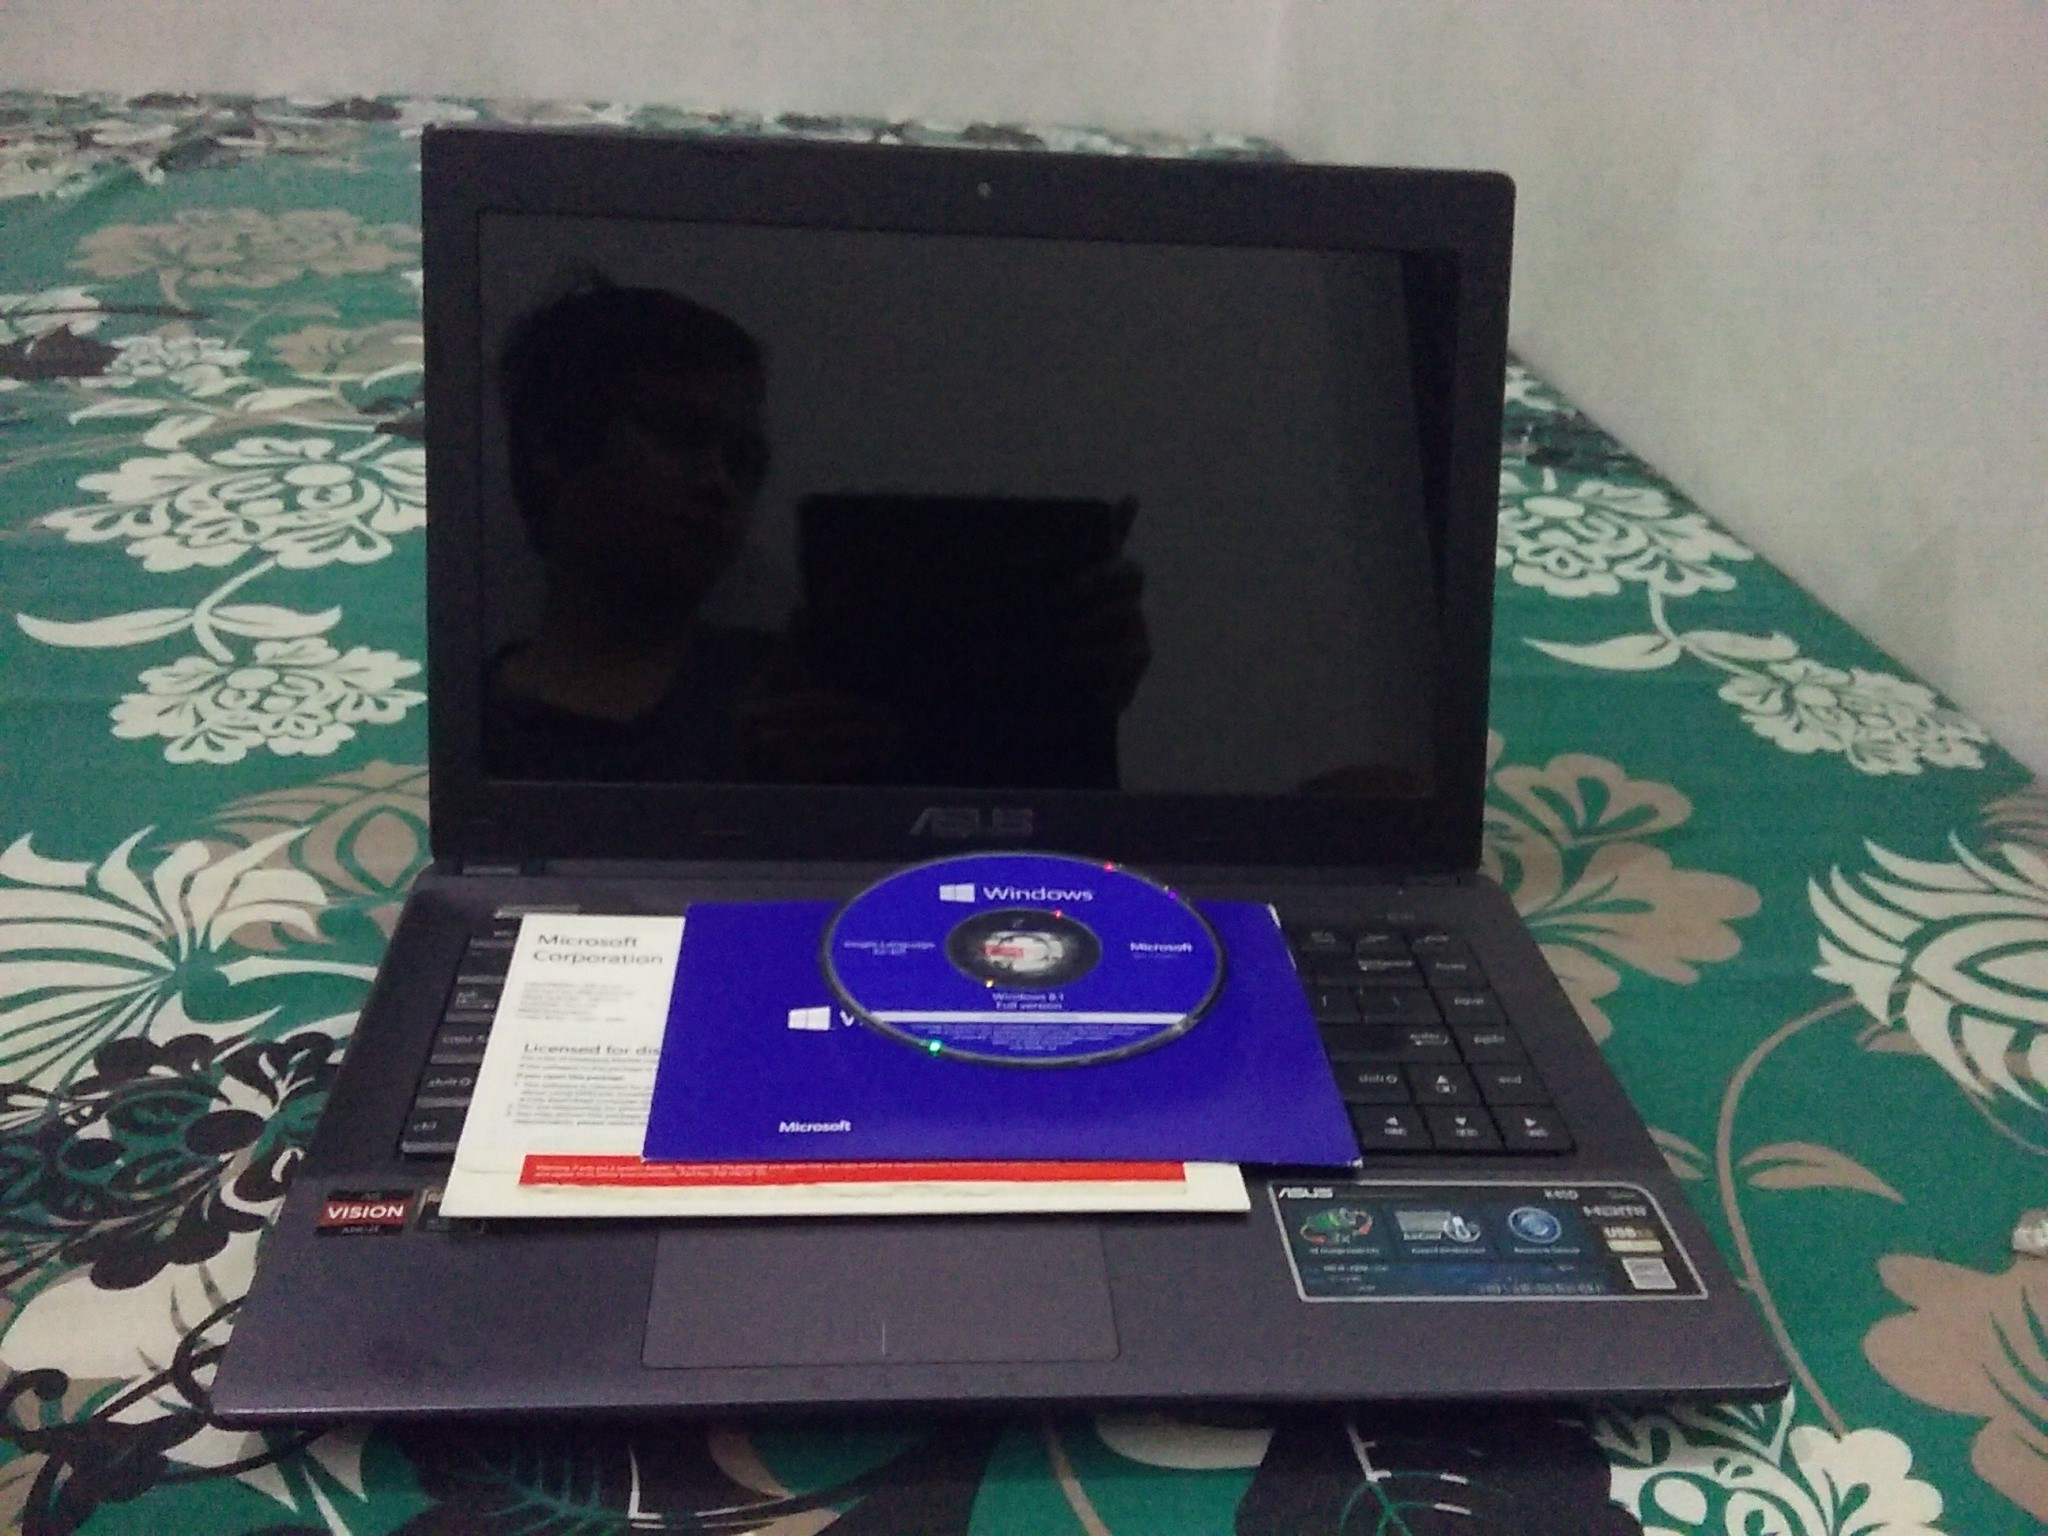 Dijual Laptop ASUS K45D + Windows 8.1 Ori